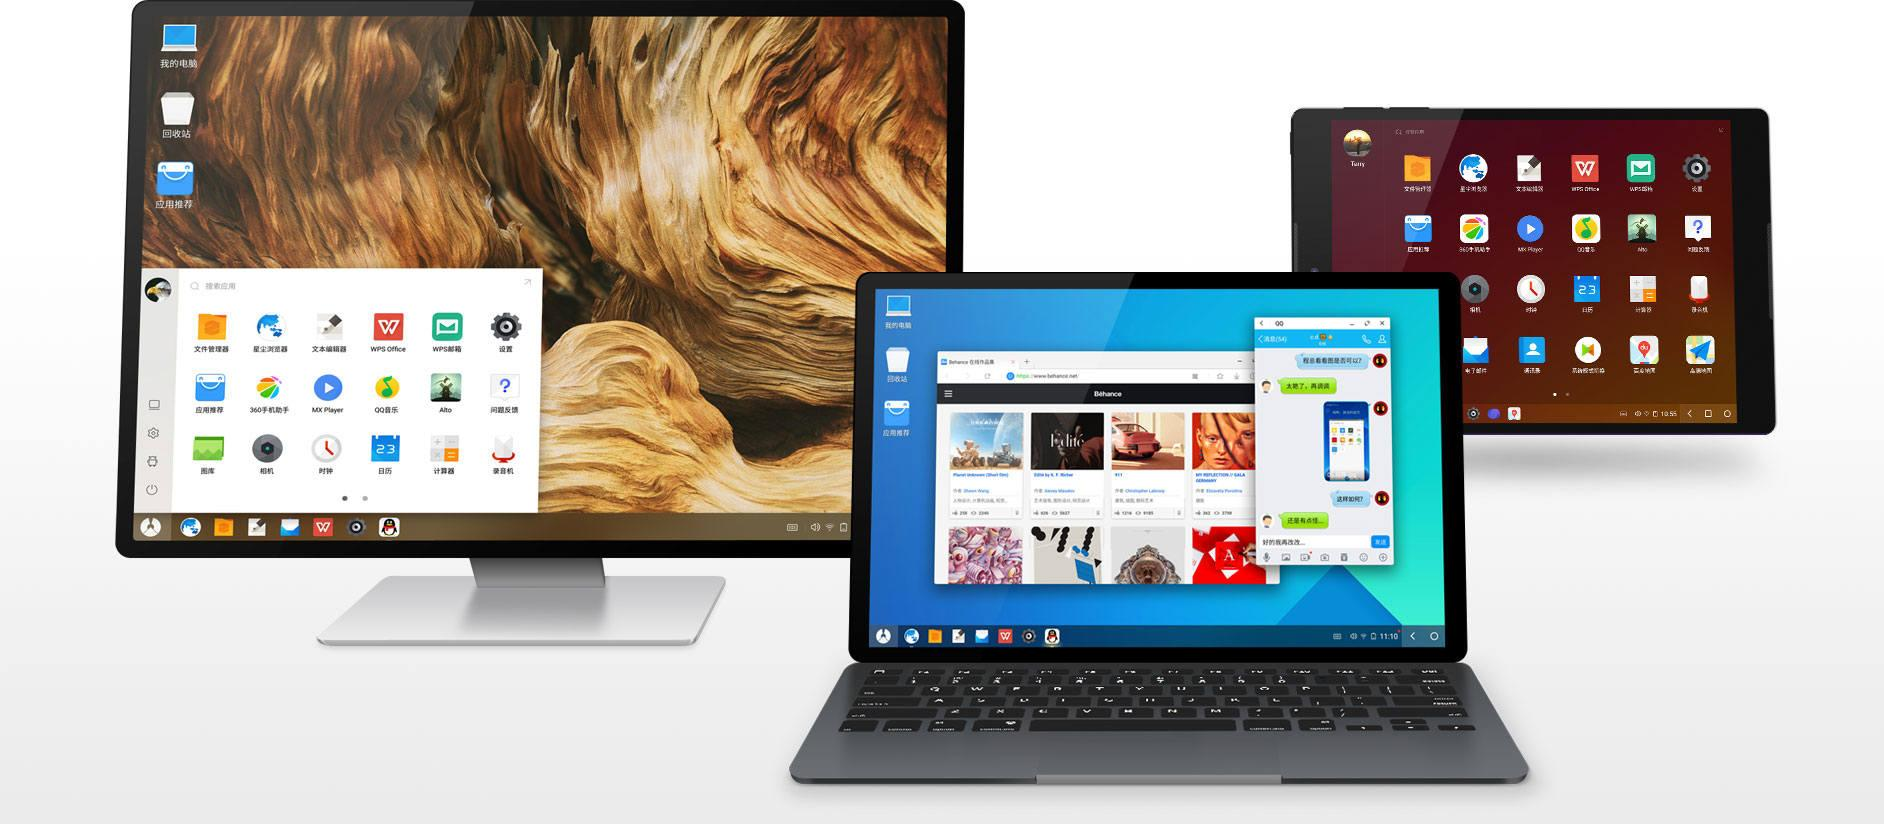 Remix OS discontinued: here are some alternatives - SlashGear